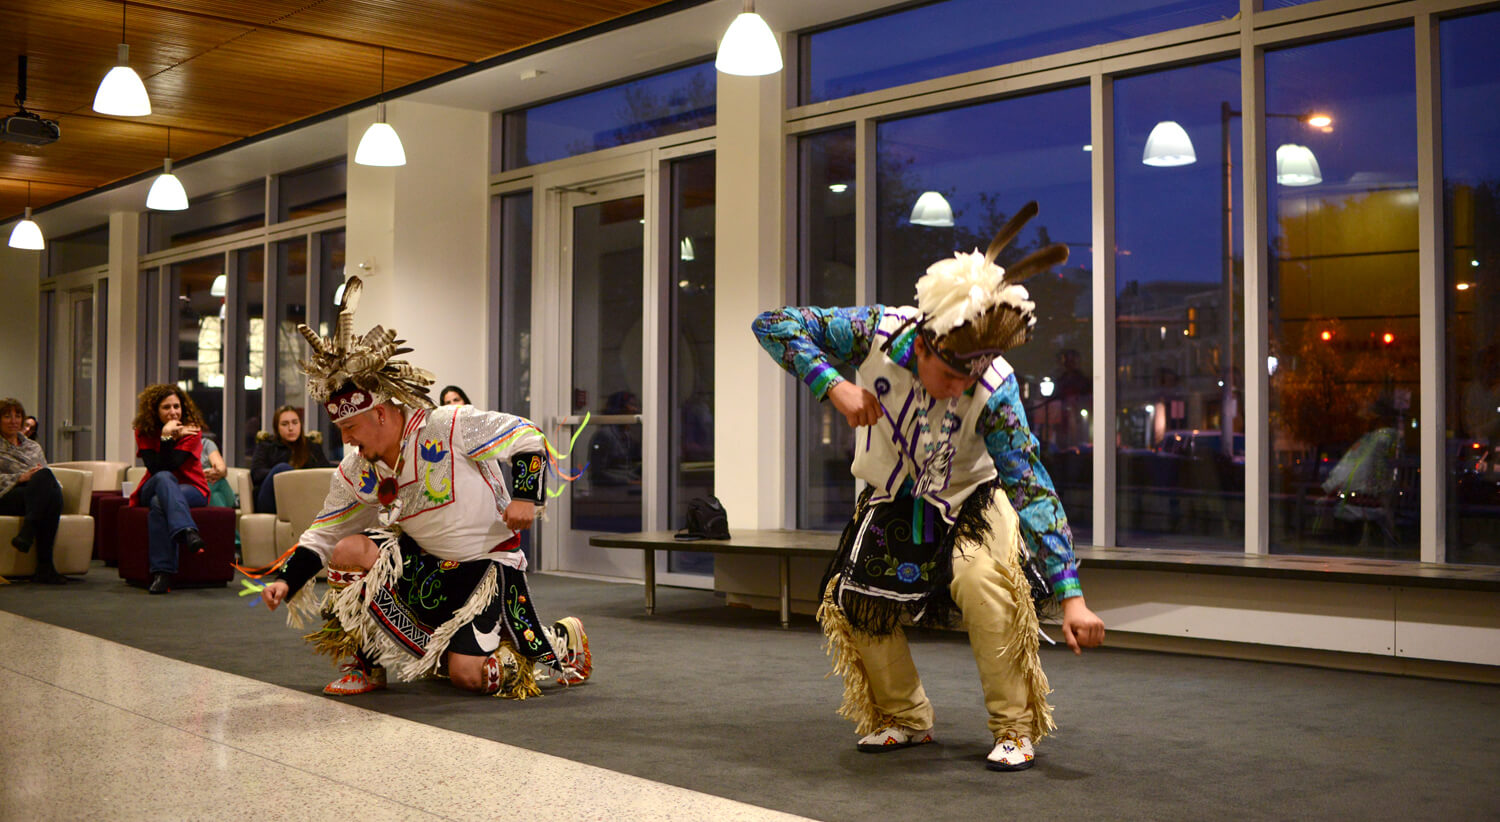 A traditional native dance culminates in these dynamic poses.